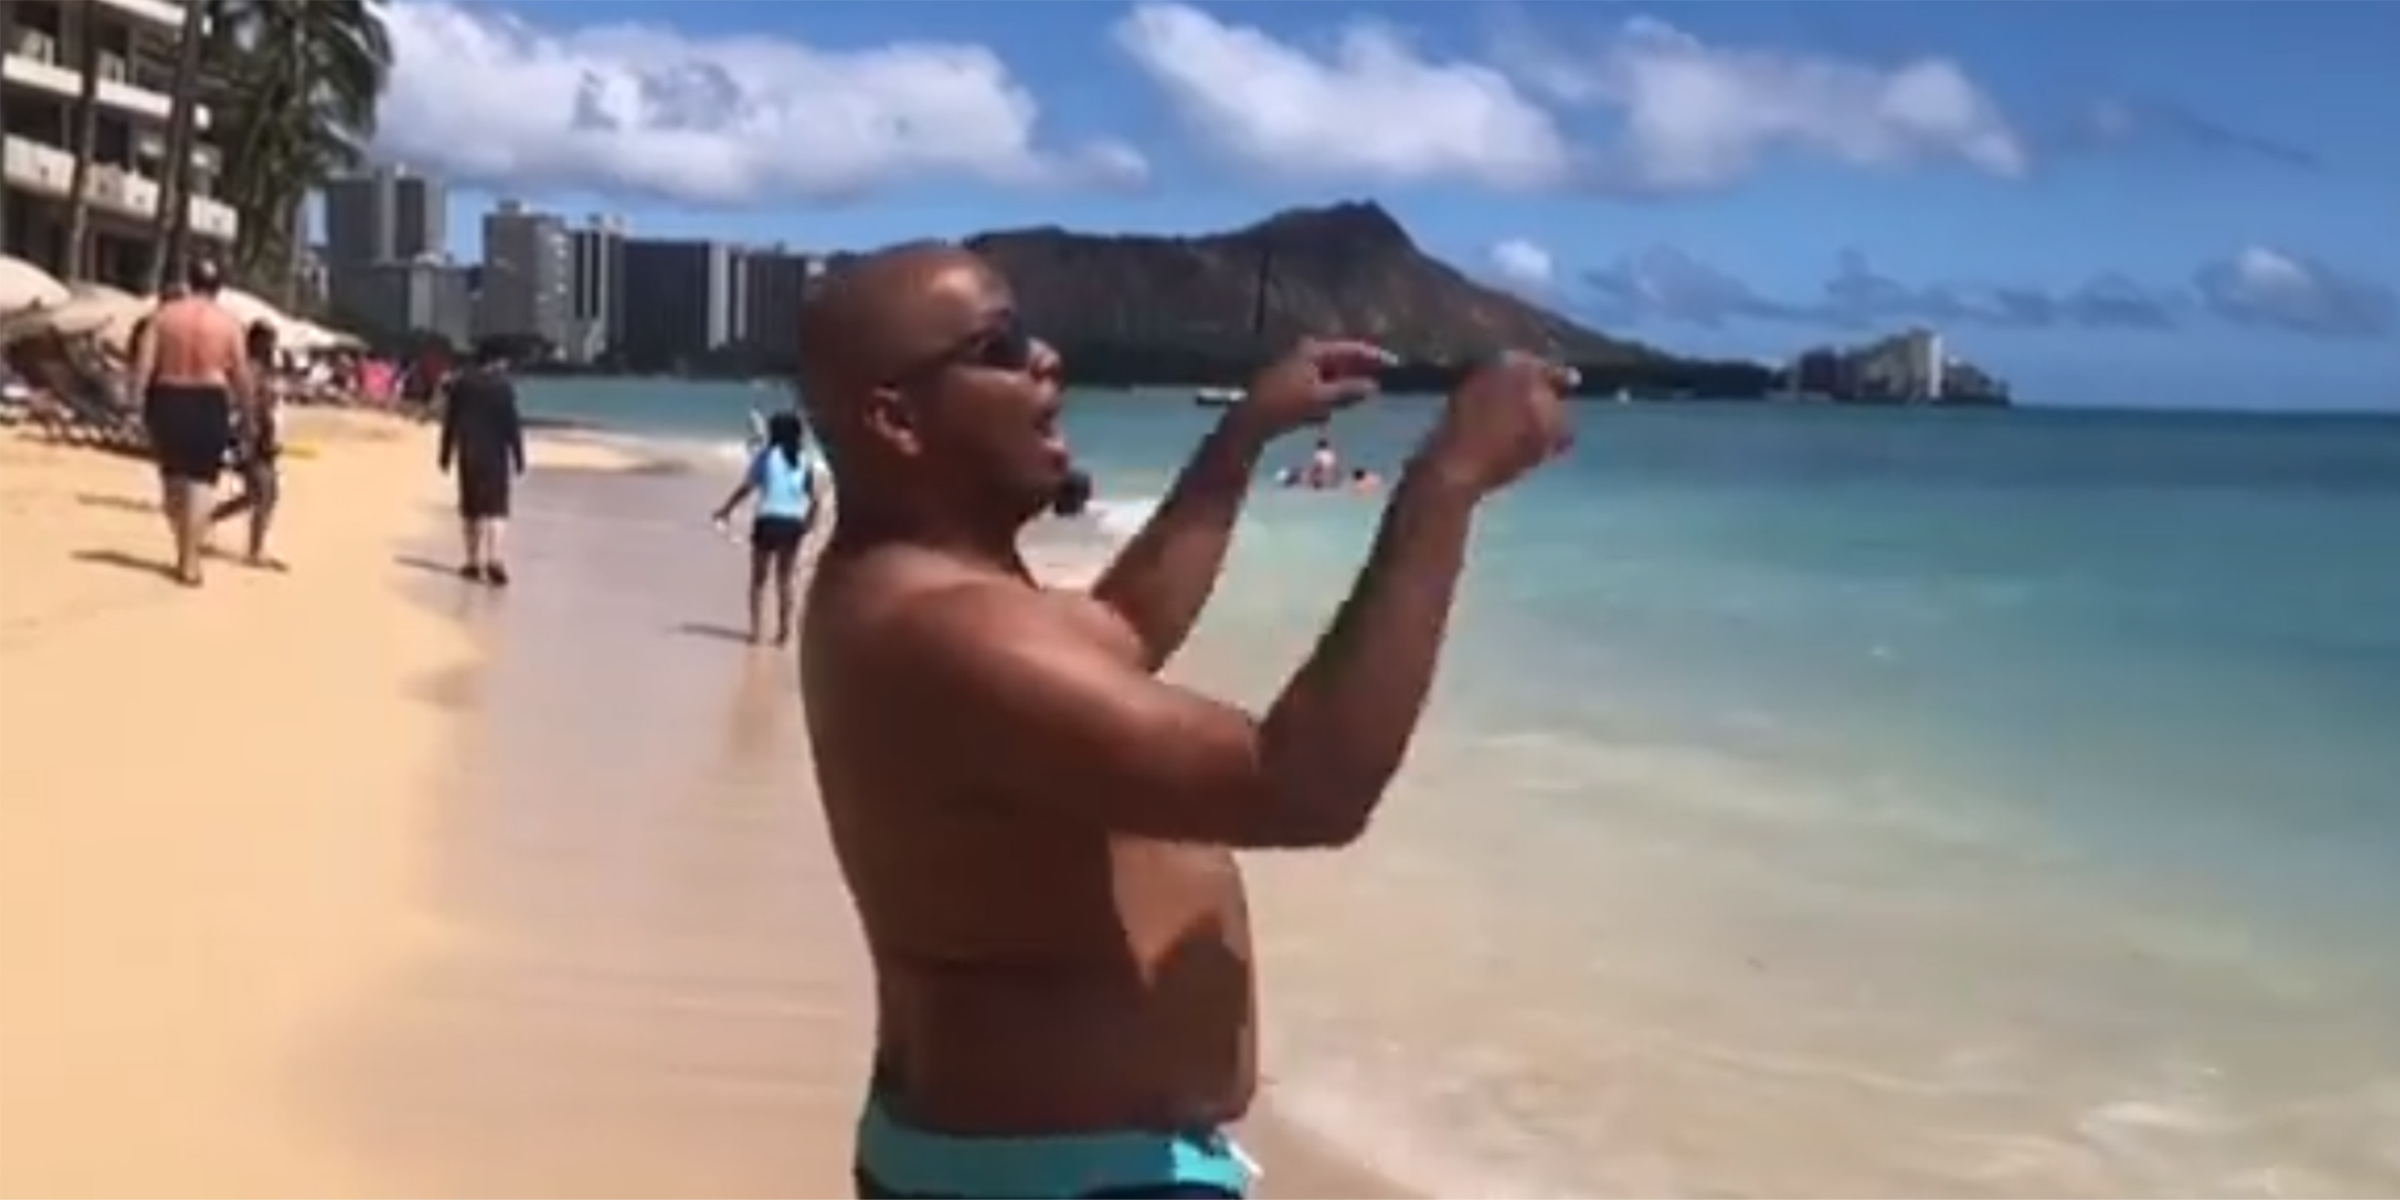 Dad's hilarious beach video sends message about body shaming